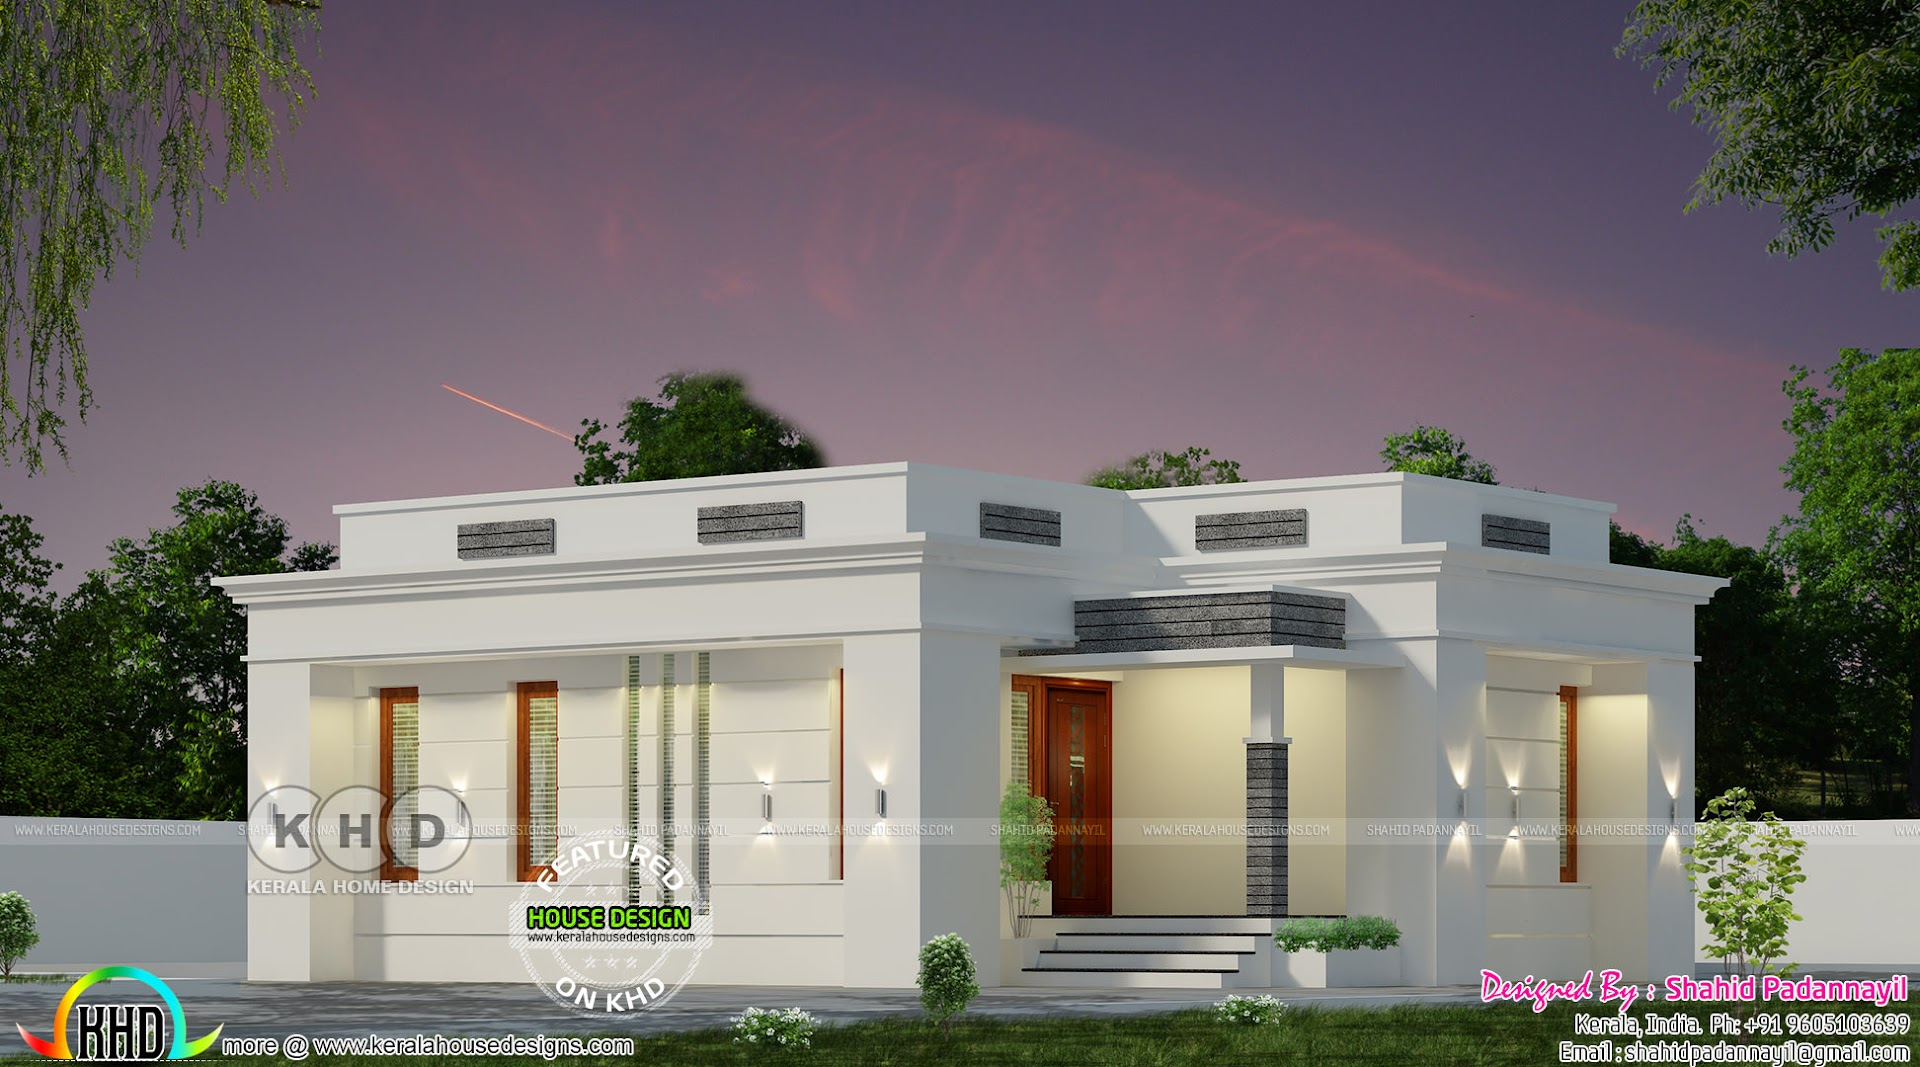 Flat roof 2 bedroom single floor home plan - Kerala home ...